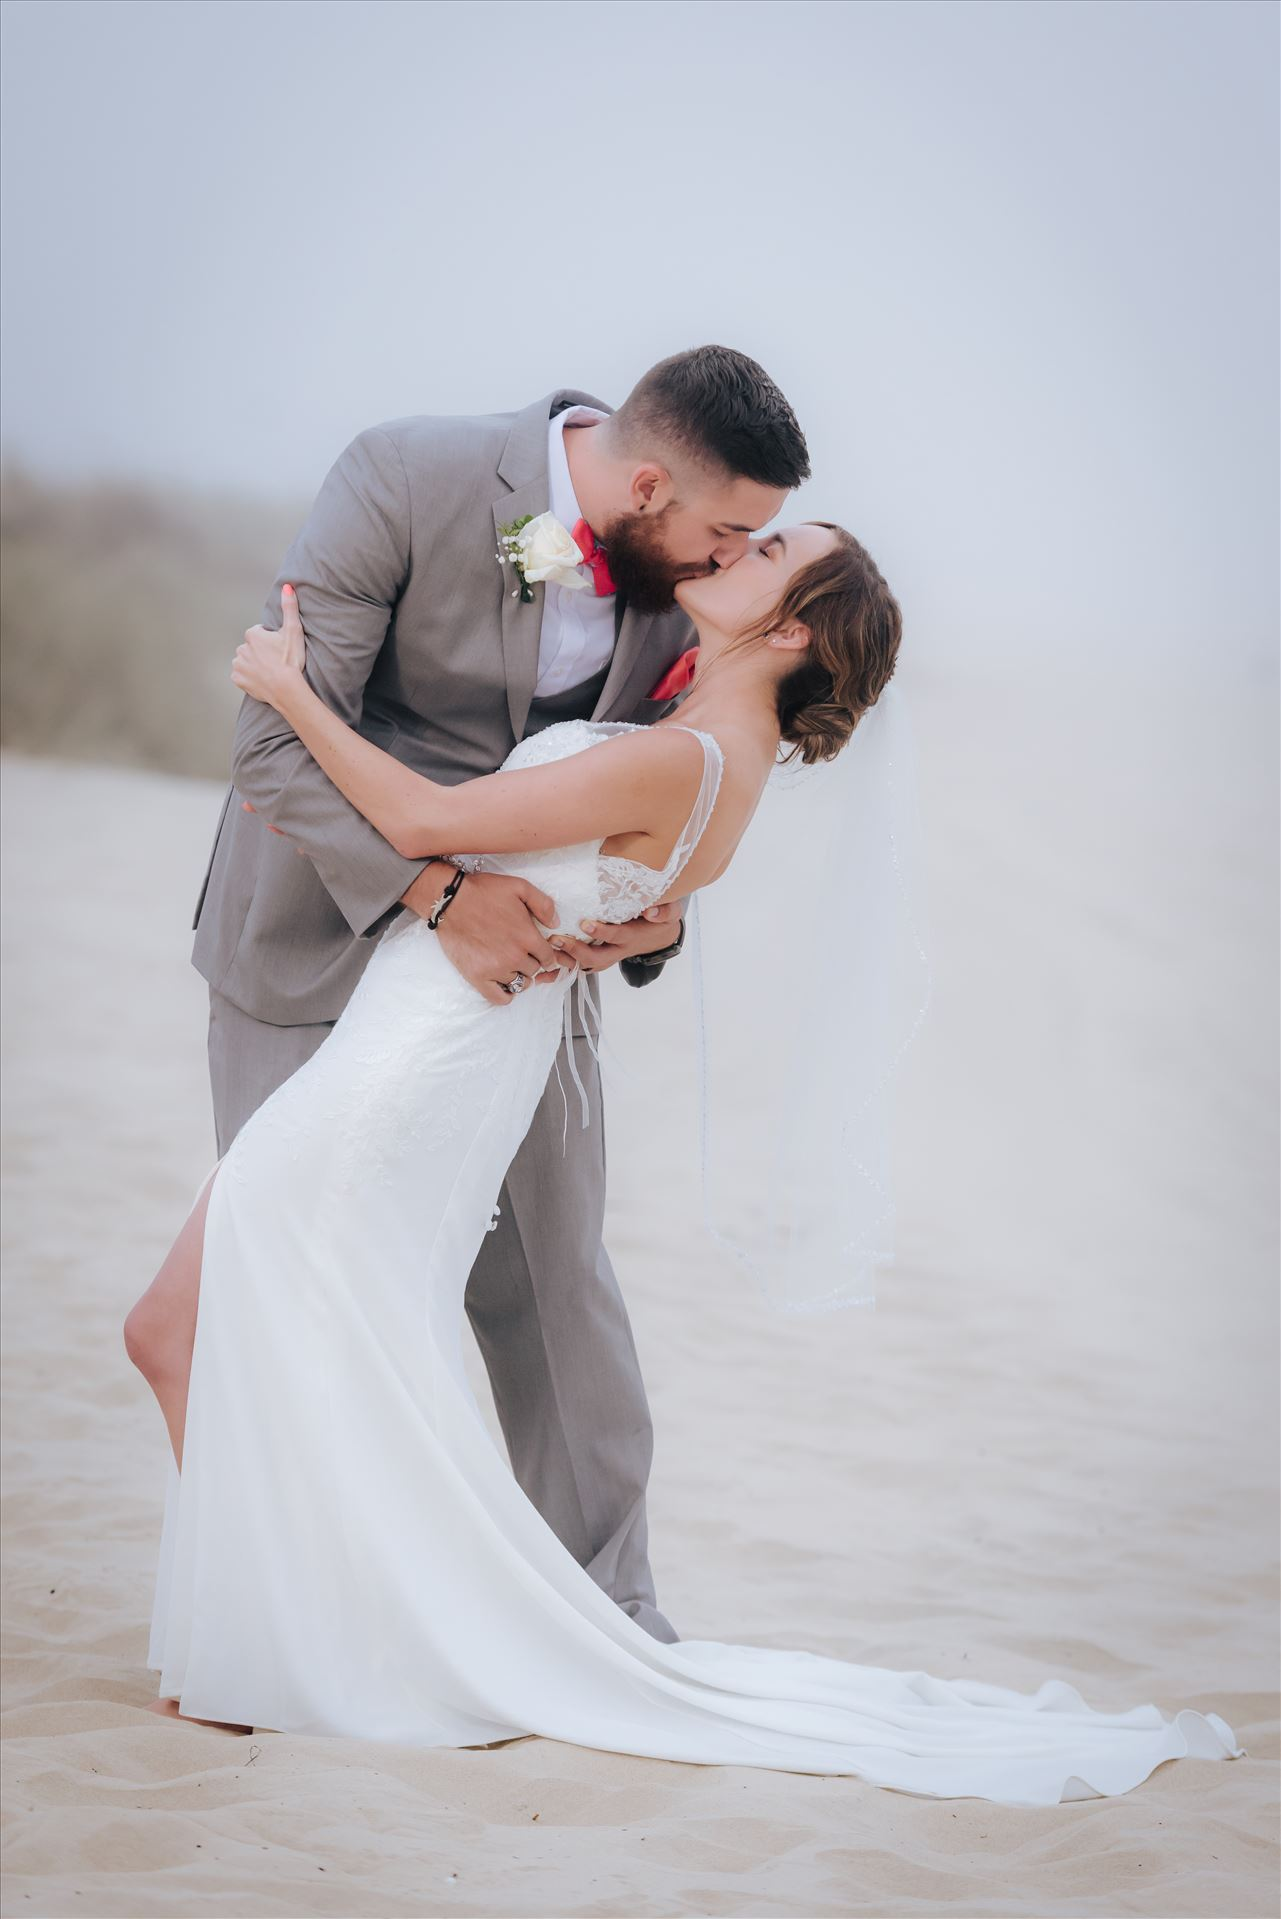 FW-8130.jpg - Romantic wedding in the sand on Grover Beach in California.  Barefoot with surfboards and driftwood, tent and ceremony set up by Beach Butlerz, wedding photography by Mirror's Edge Photography.  Romantic Bride and Groom dip in the fog by Sarah Williams